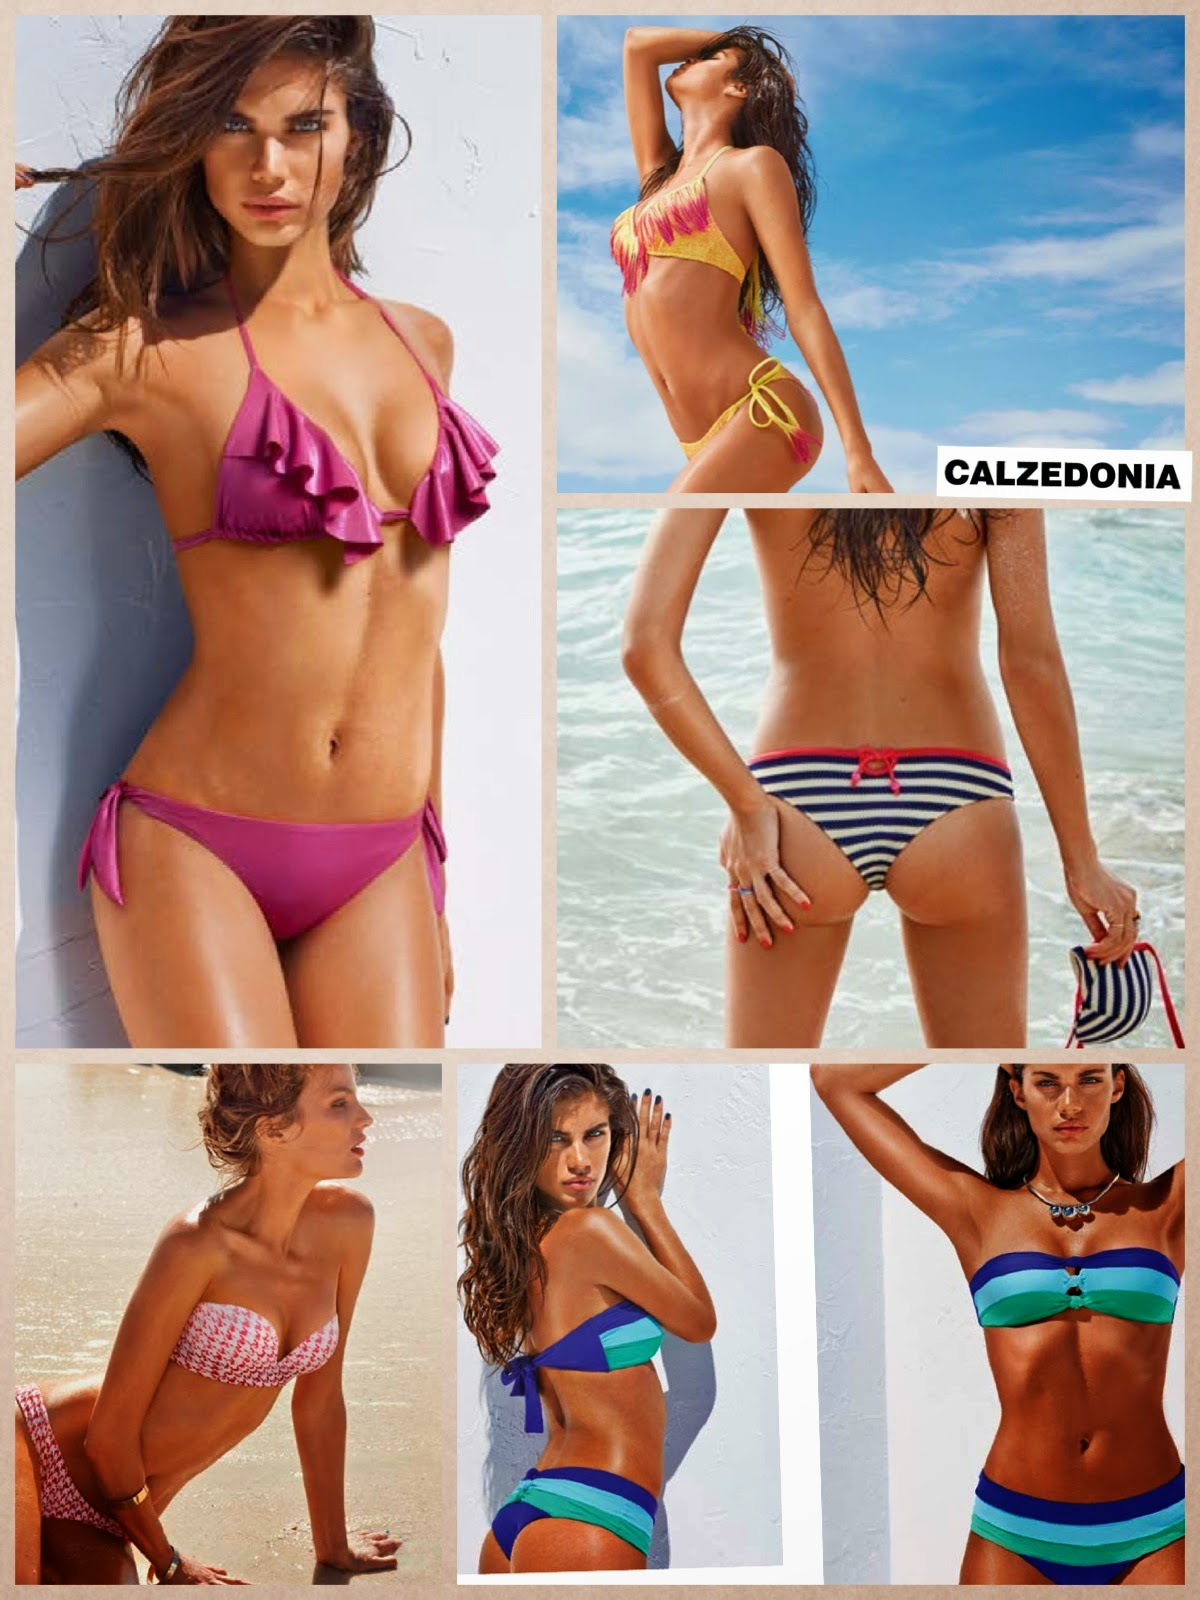 costumi 2014, calzedonia, golden point, catalogo costumi, yamamay